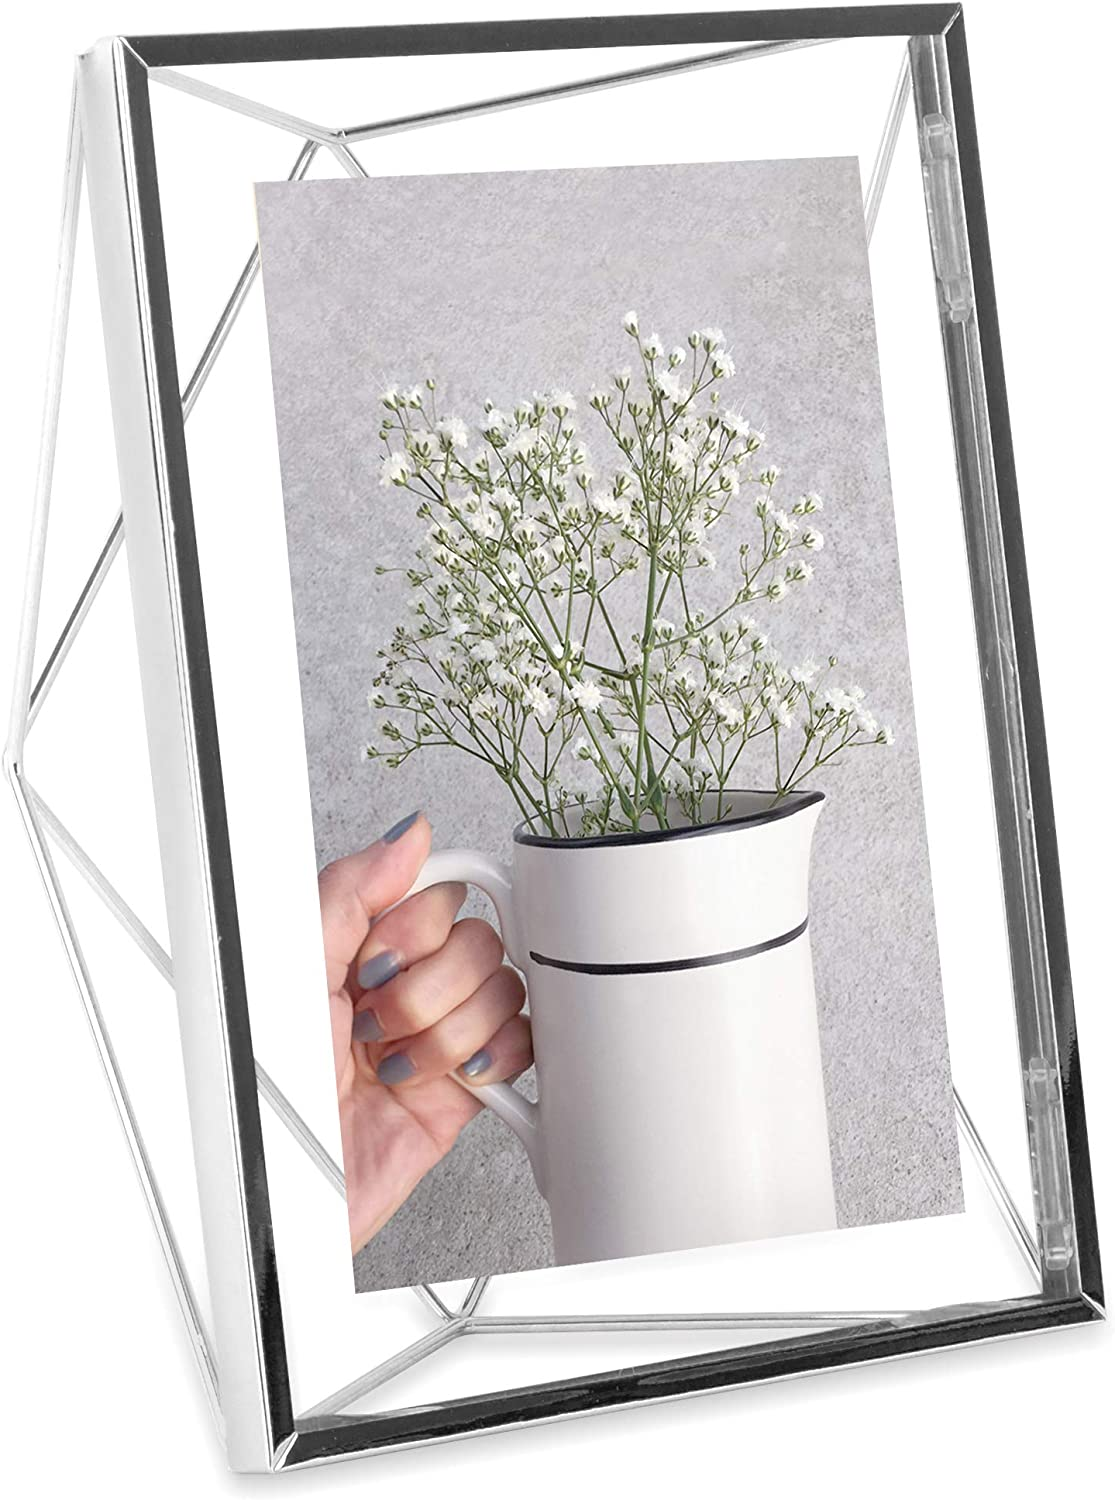 Umbra Prisma Picture Frame, 5 x 7 Photo Display for Desk or Wall, Chrome